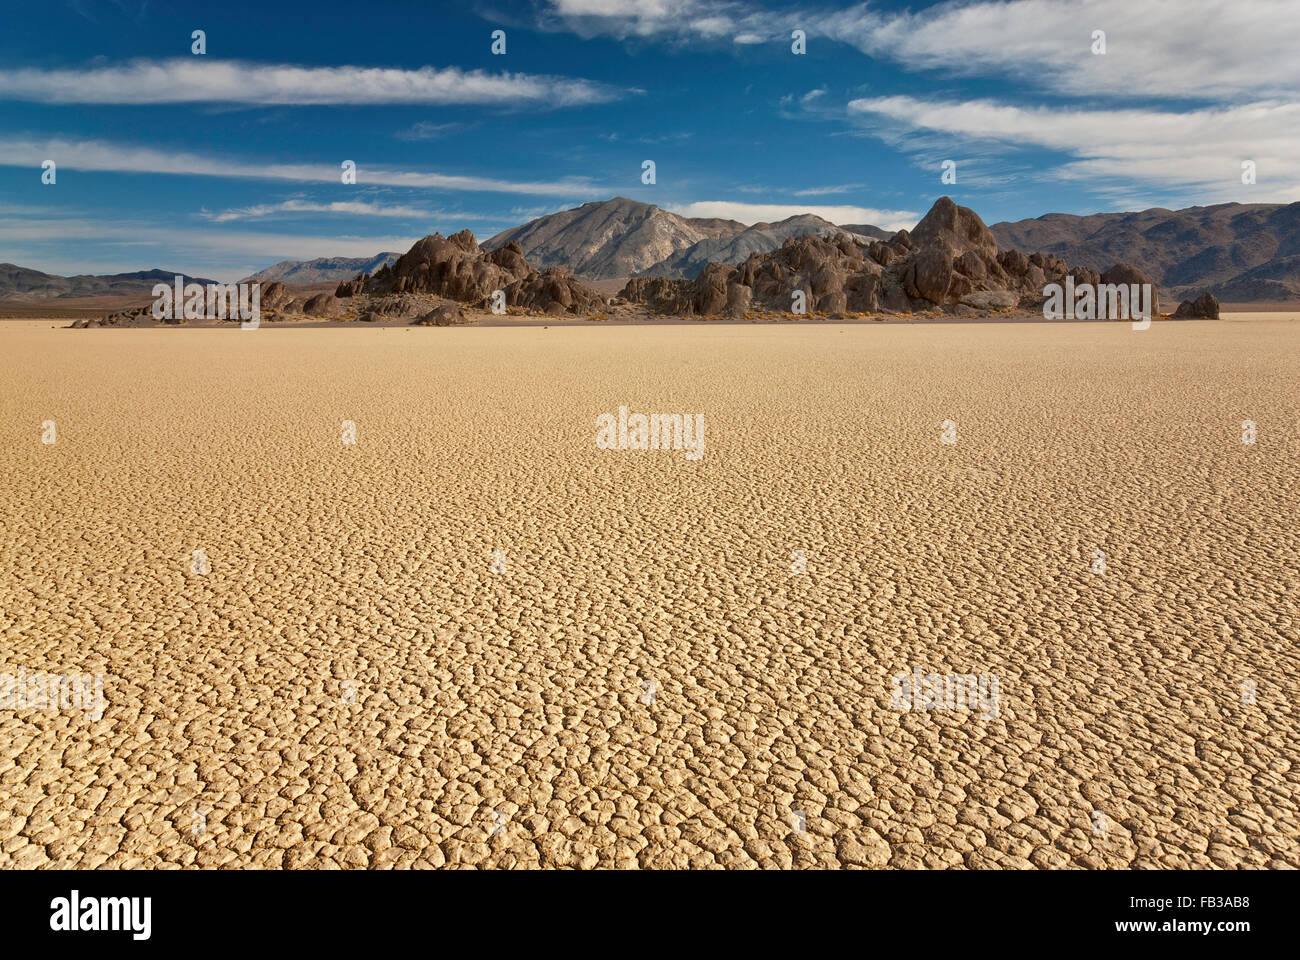 Die Tribüne Rock, The Racetrack trocken Seegrund, Cottonwood Mountains in Dist, Death Valley Nationalpark, Stockbild